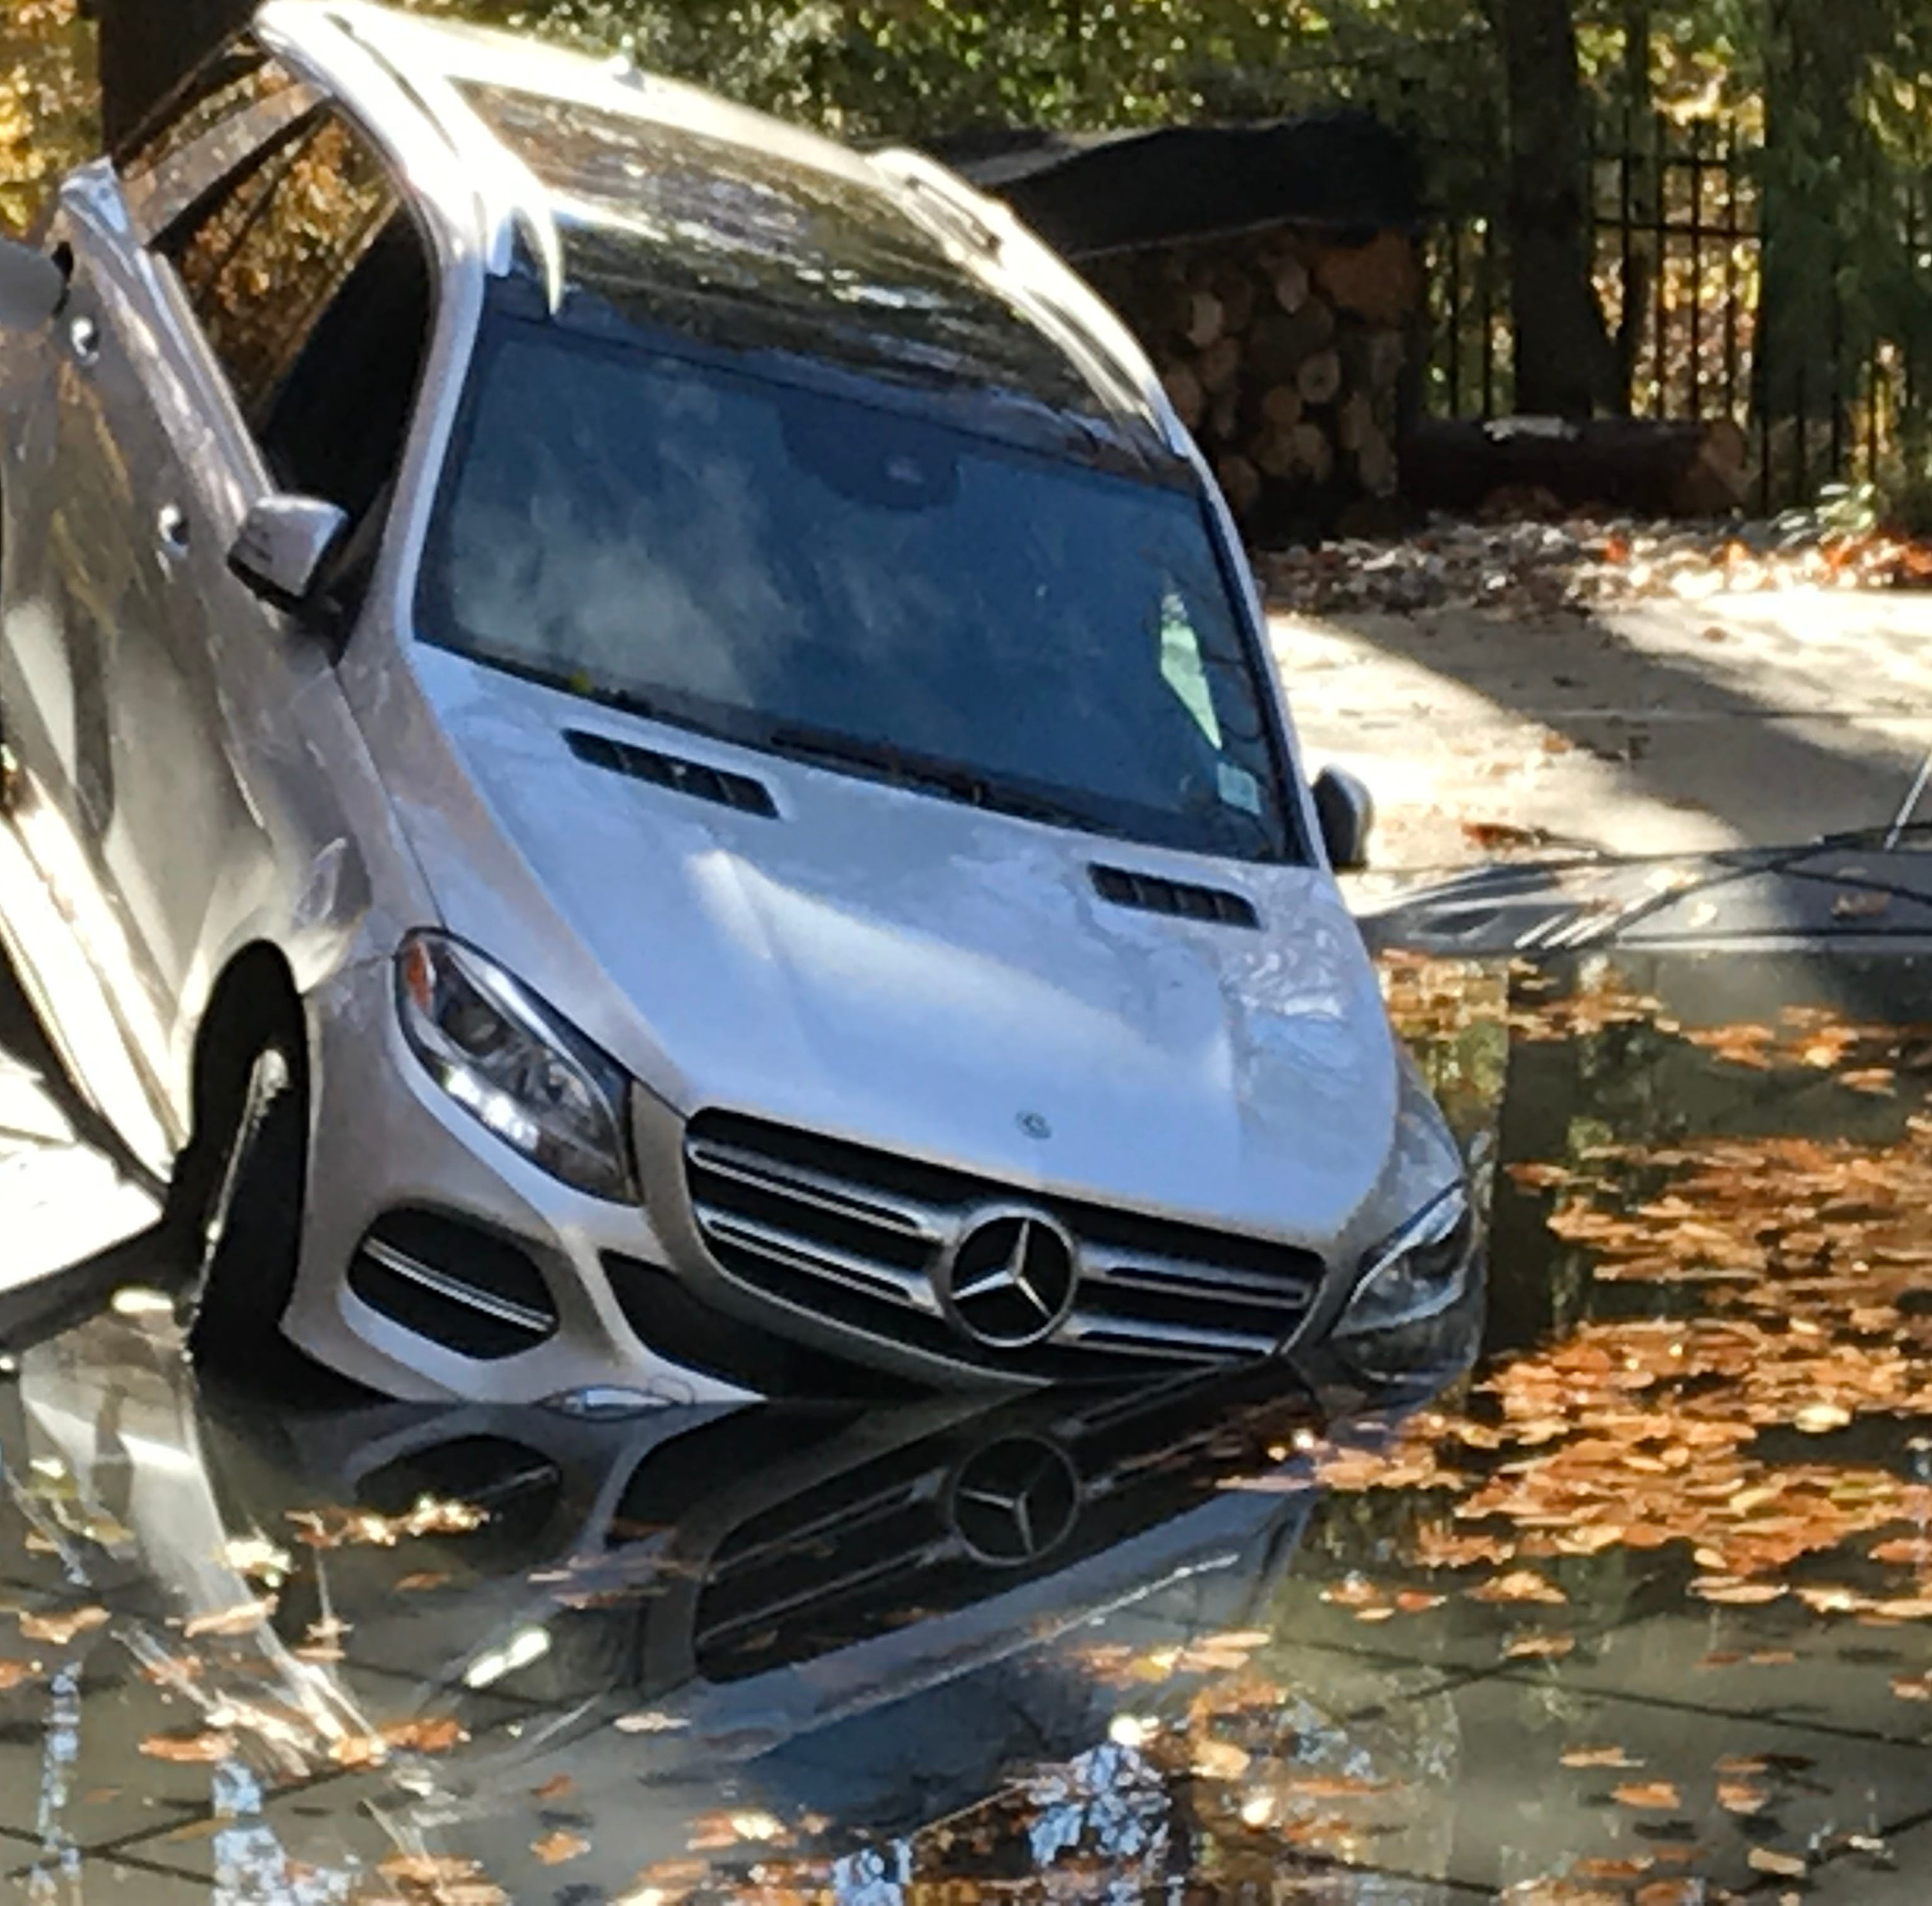 Holmdel driver crashes car into neighbor's pool